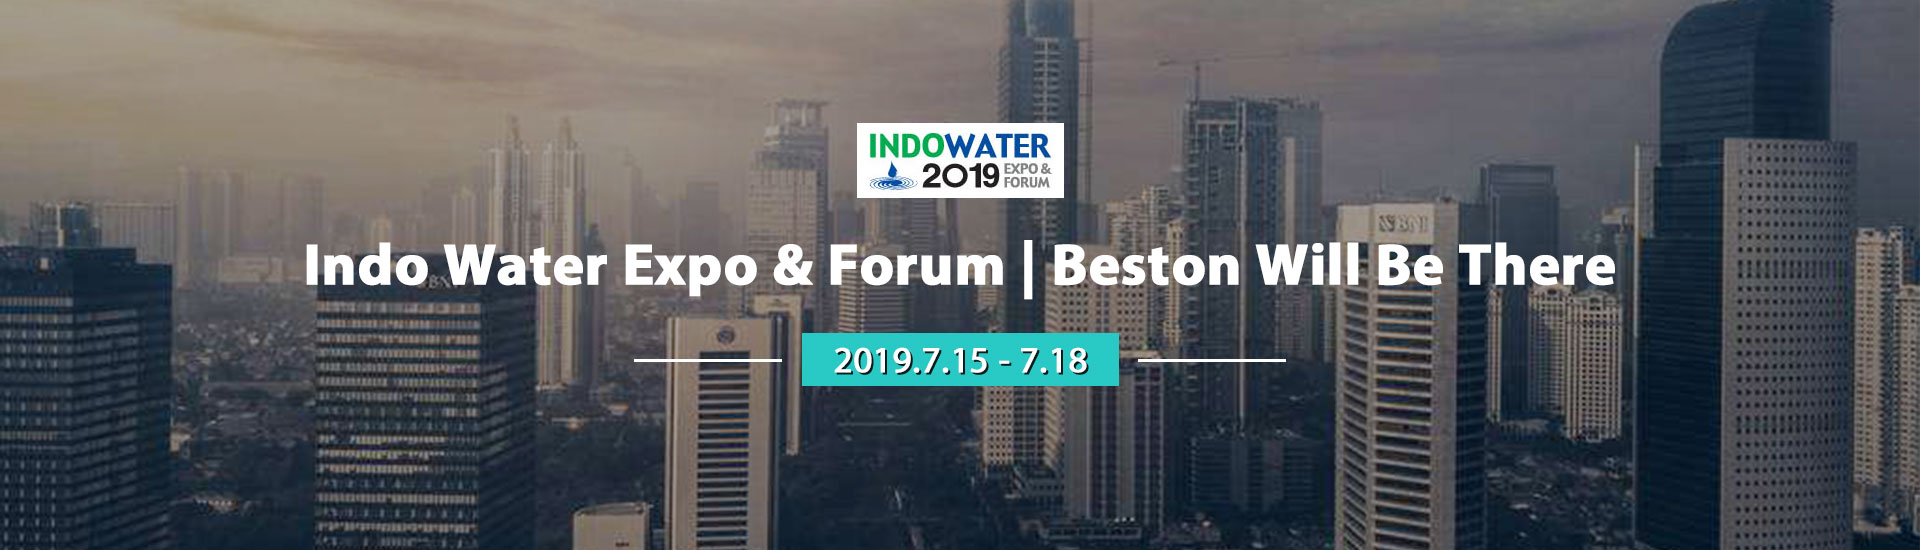 Meet Beston at Indo Water Expo and Forum